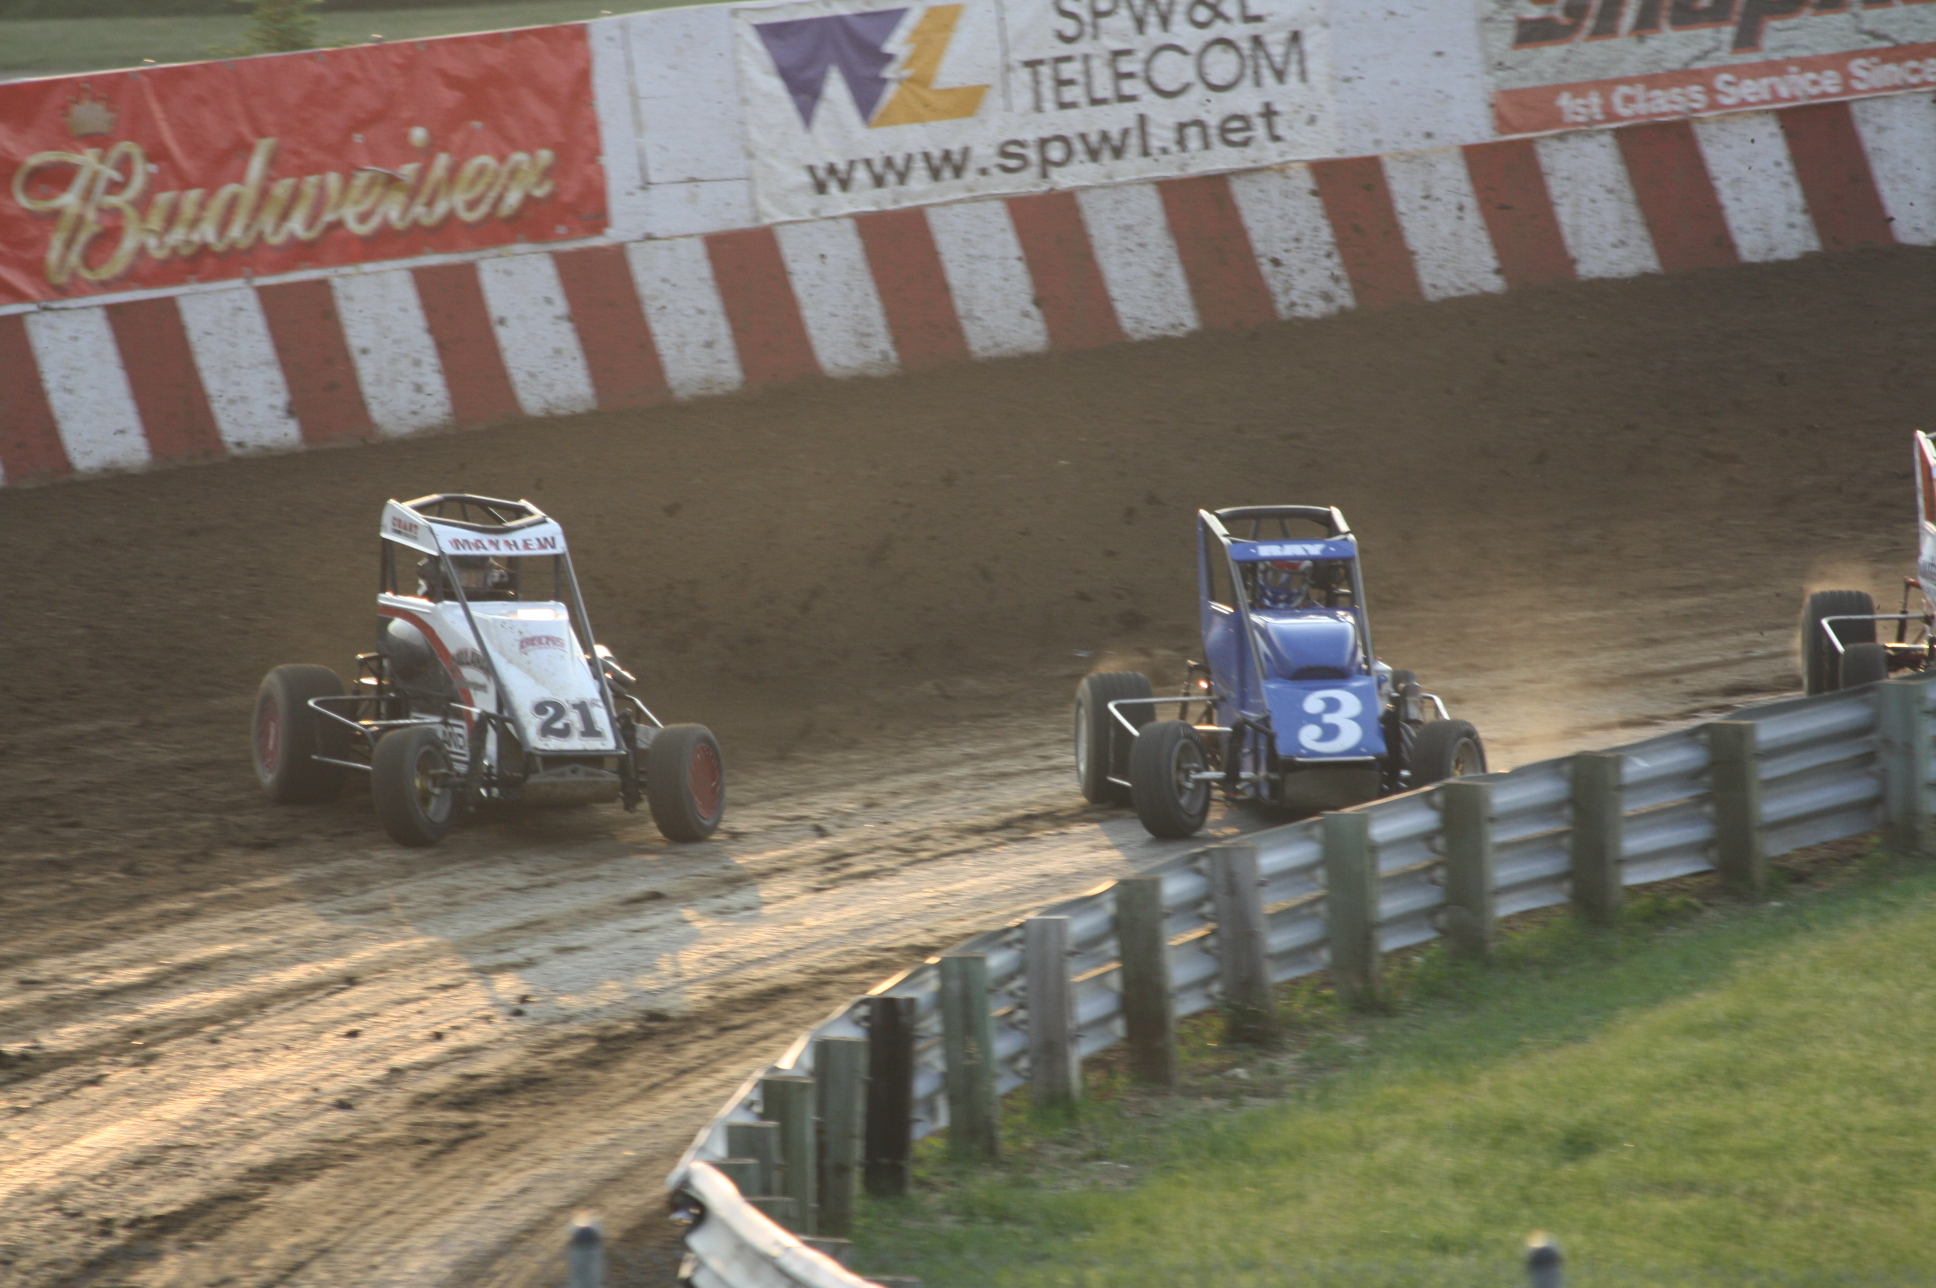 Abe lincoln quarter midget association